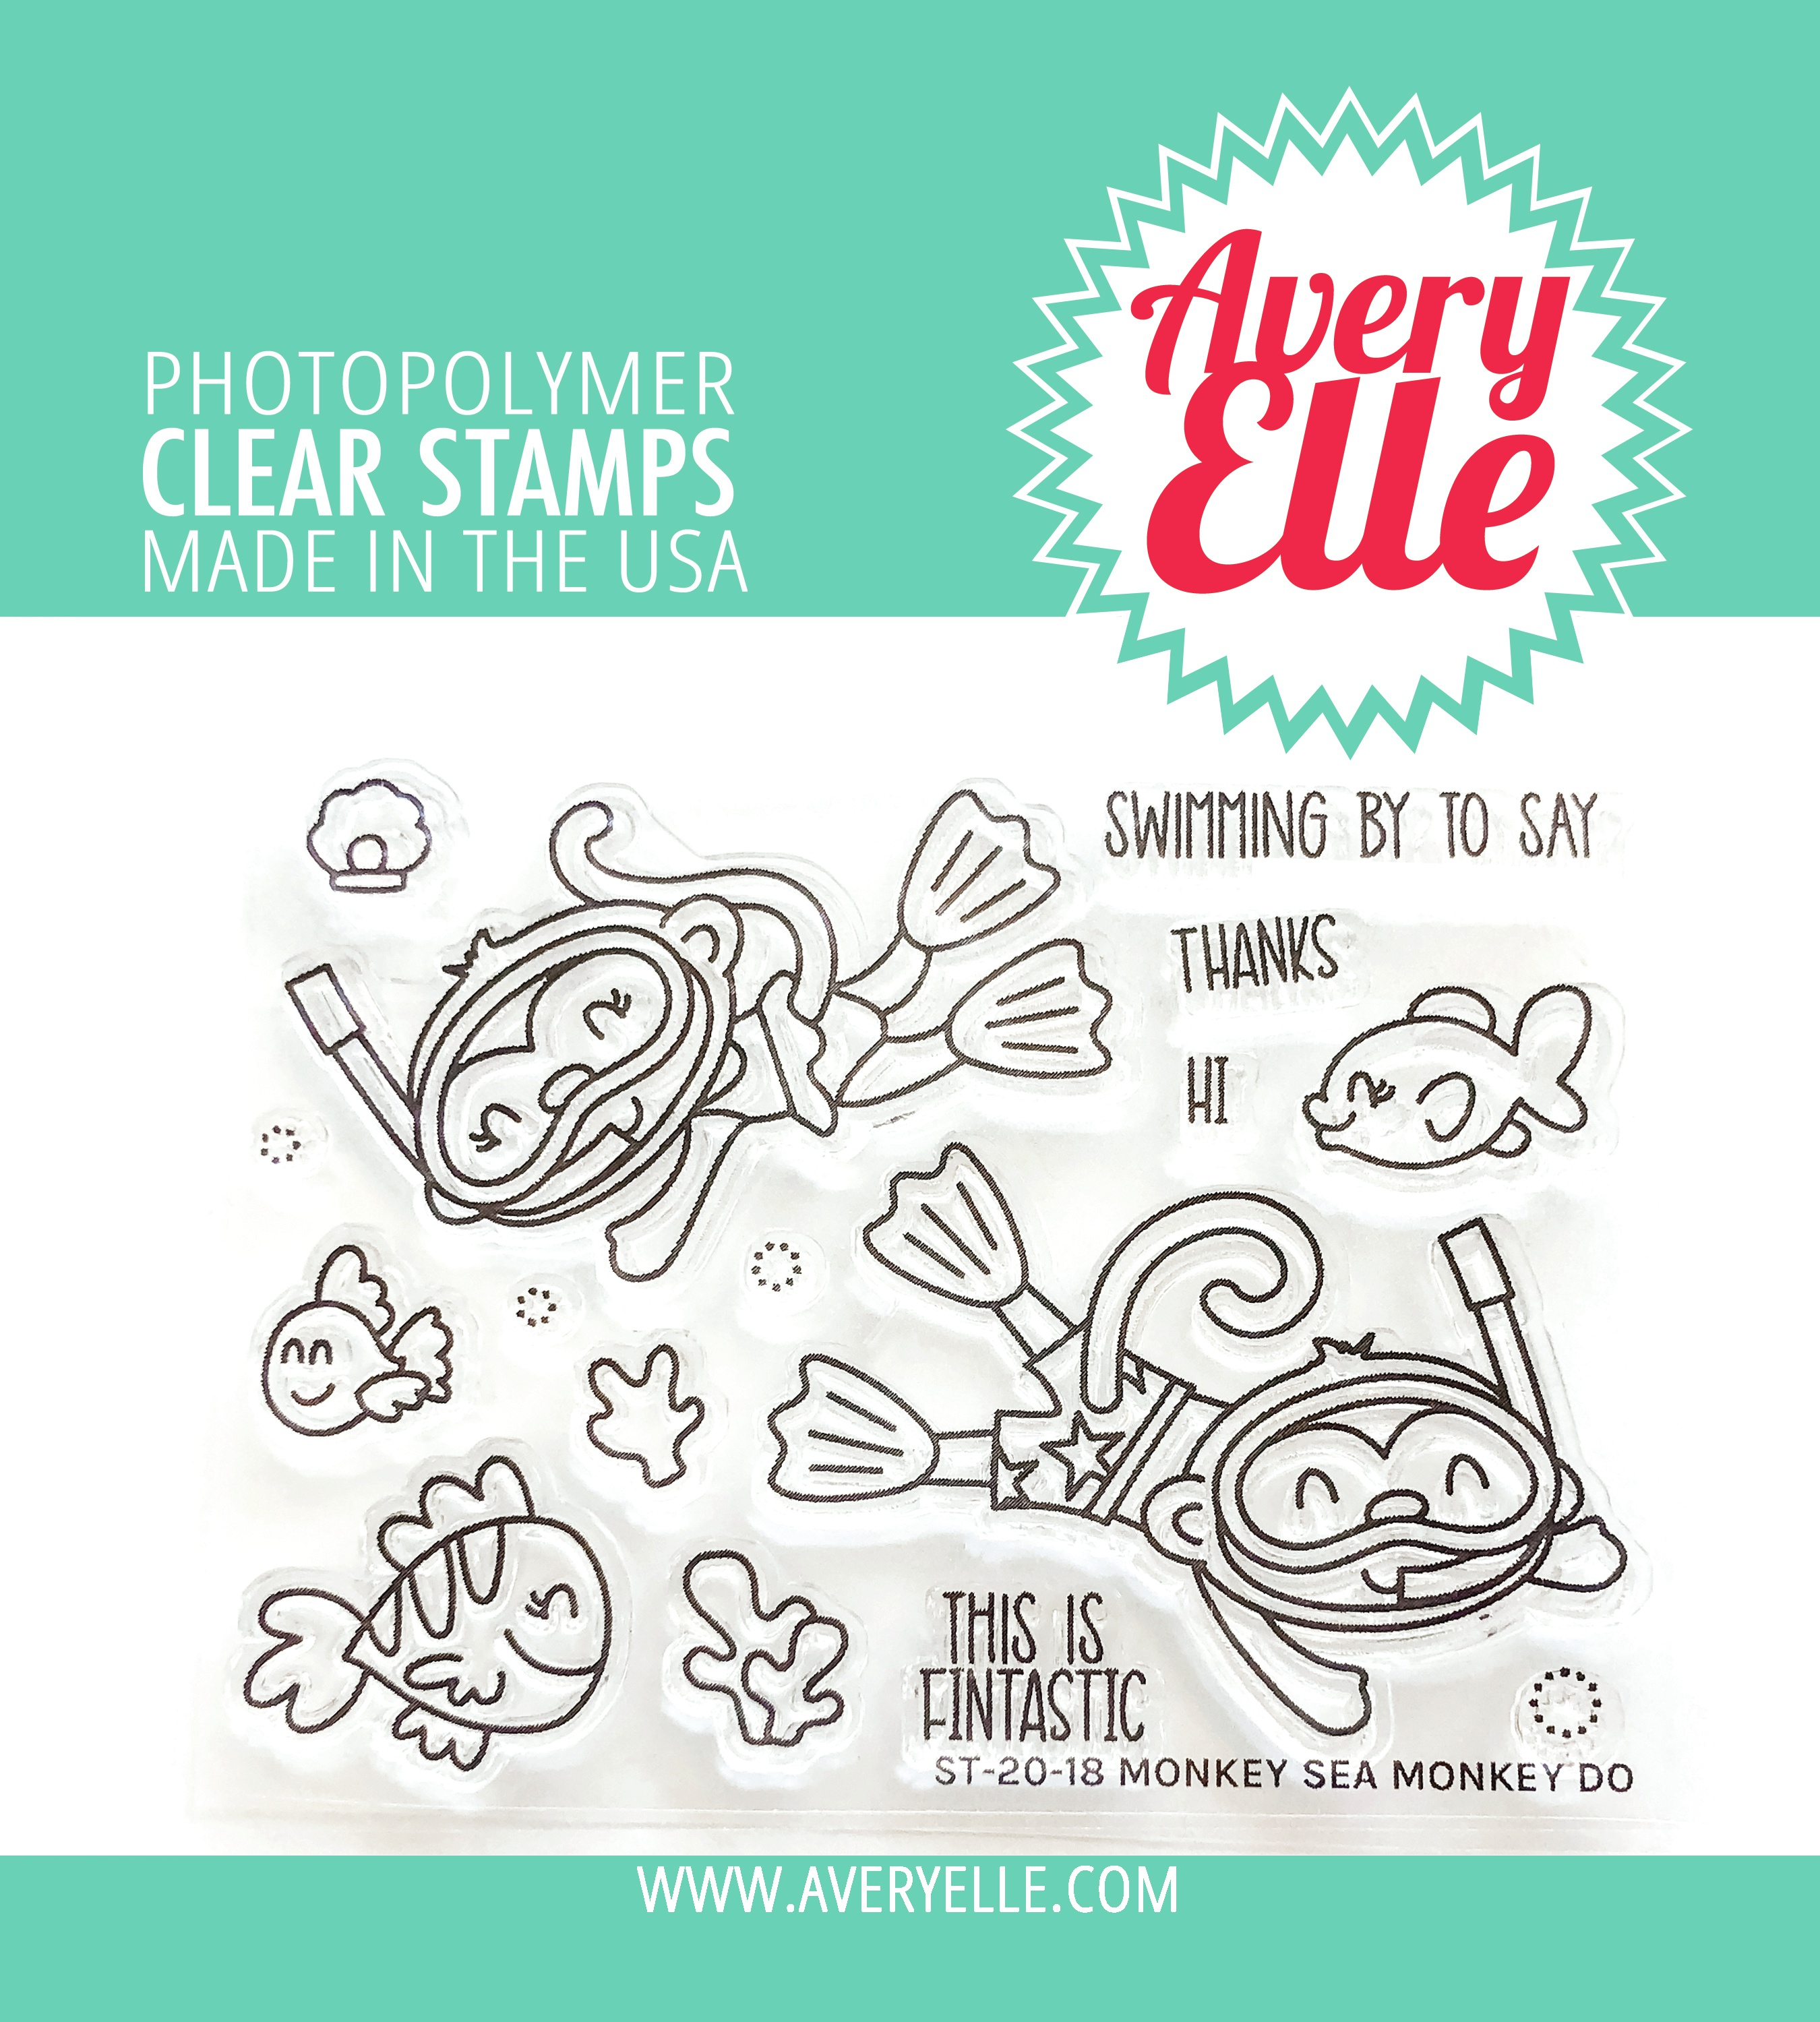 Avery Elle Clear Stamp Set 4X3-Monkey Sea Monkey Do